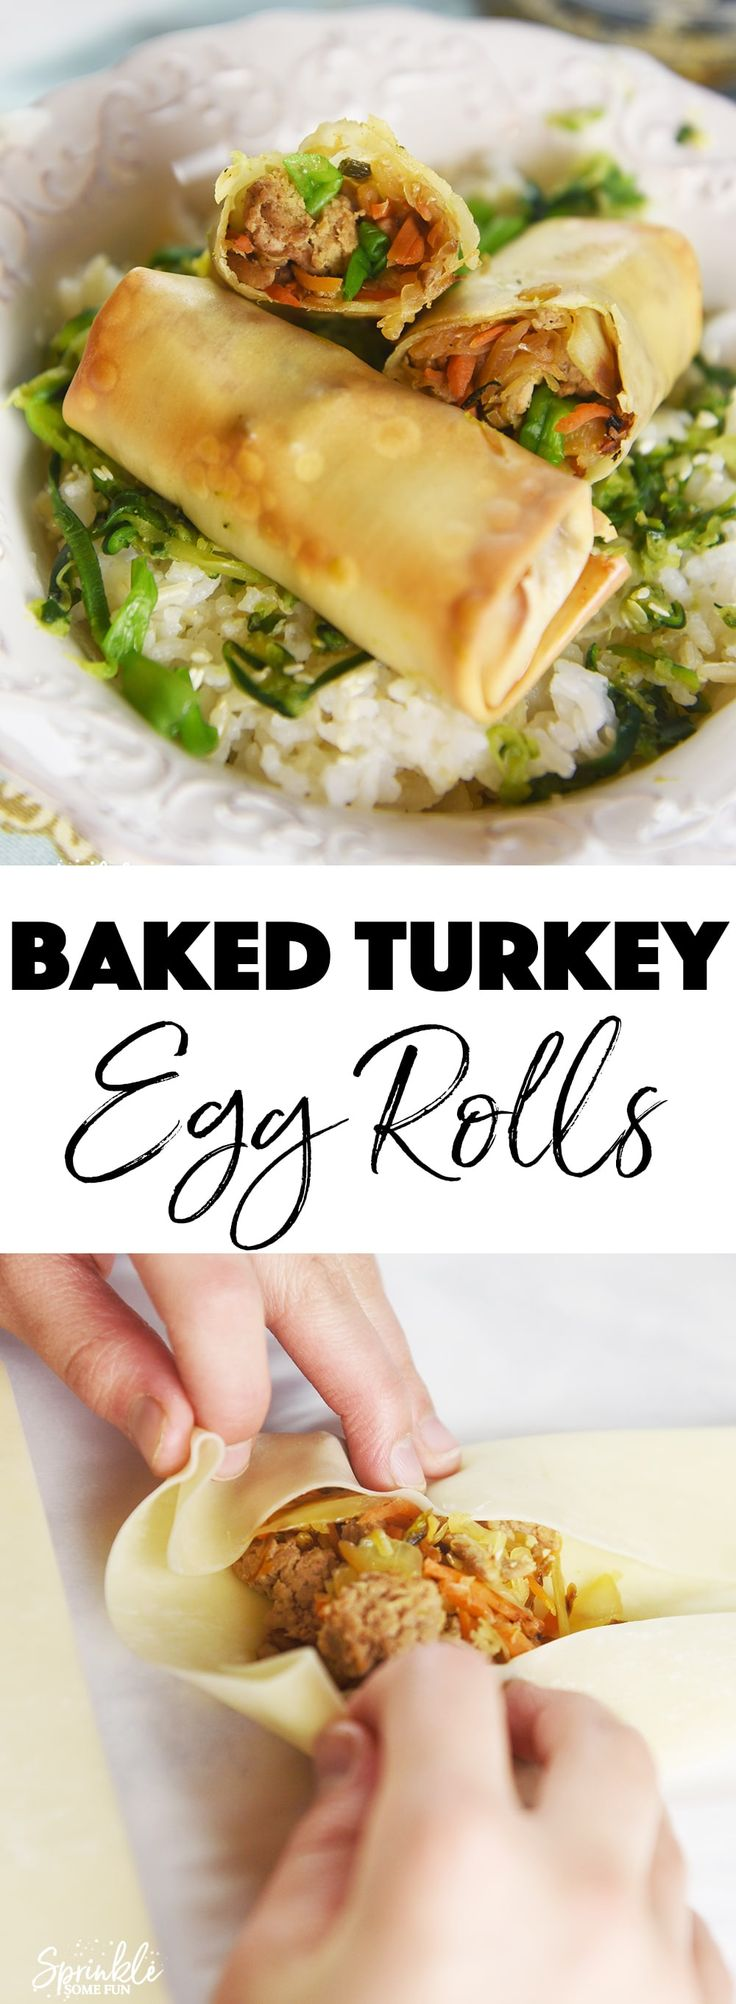 These Baked Turkey Egg Rolls are so yummy that we never miss the take out version!  My kids even say they prefer the baked version.  These are made with antibiotic and hormone free ground turkey from Honest Turkey by Honeysuckle White. (ad)